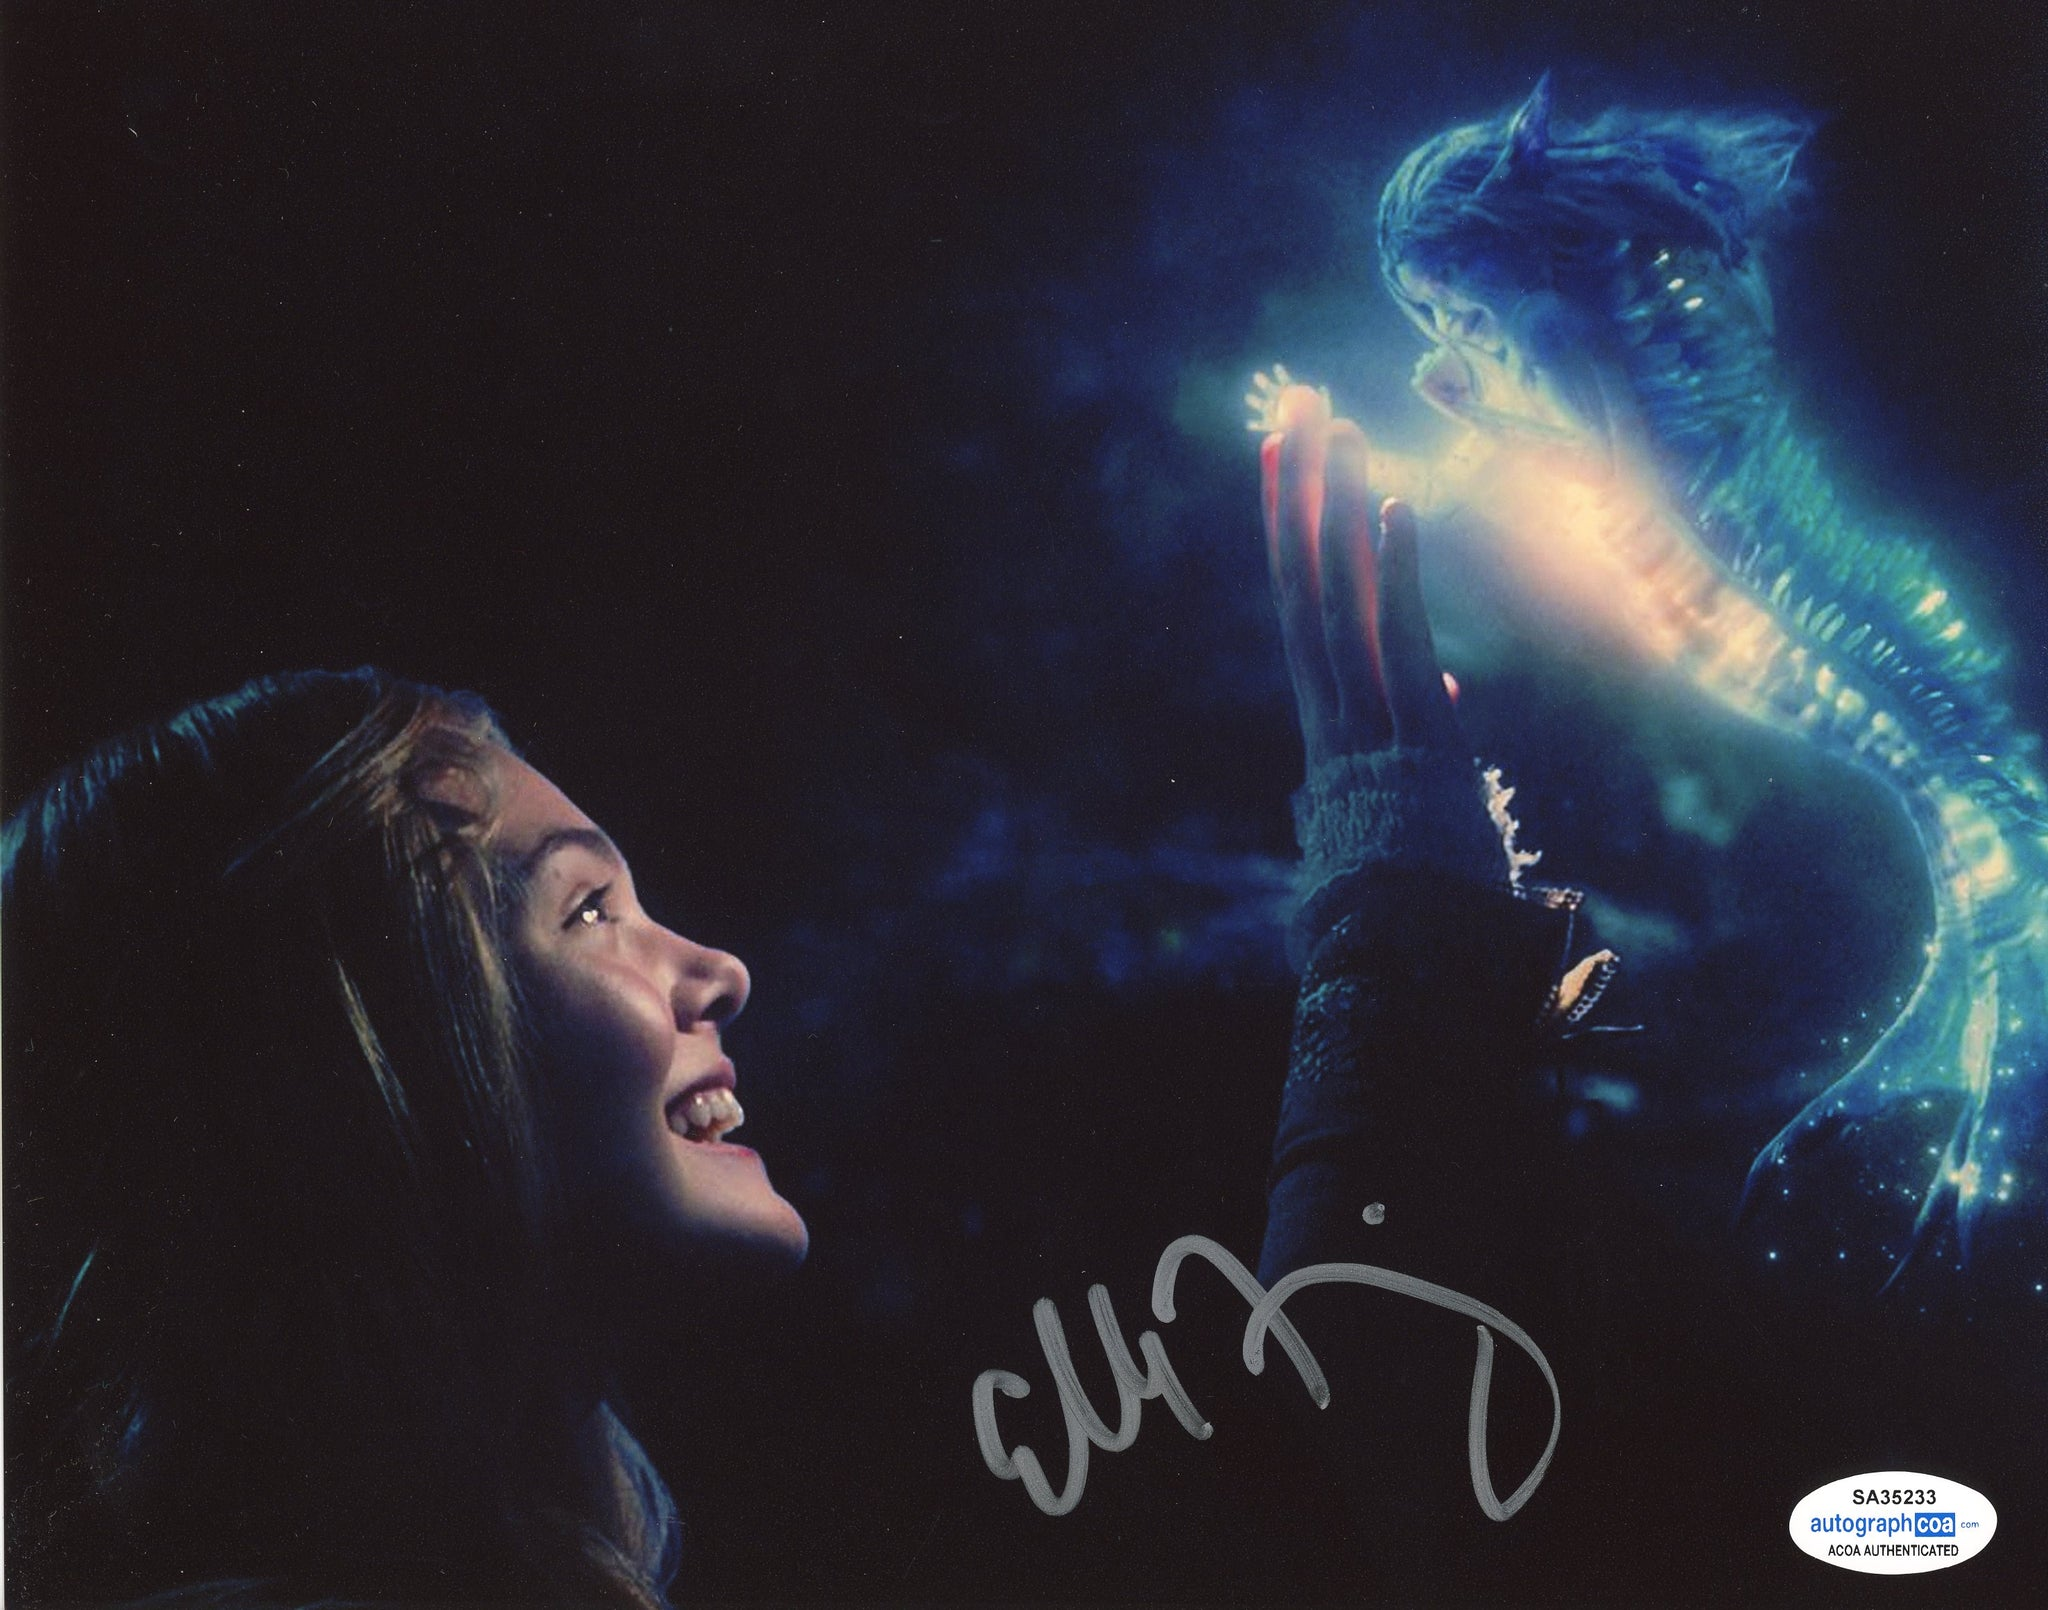 Elle Fanning Maleficent Signed Autograph 8x10 Photo ACOA #4 - Outlaw Hobbies Authentic Autographs